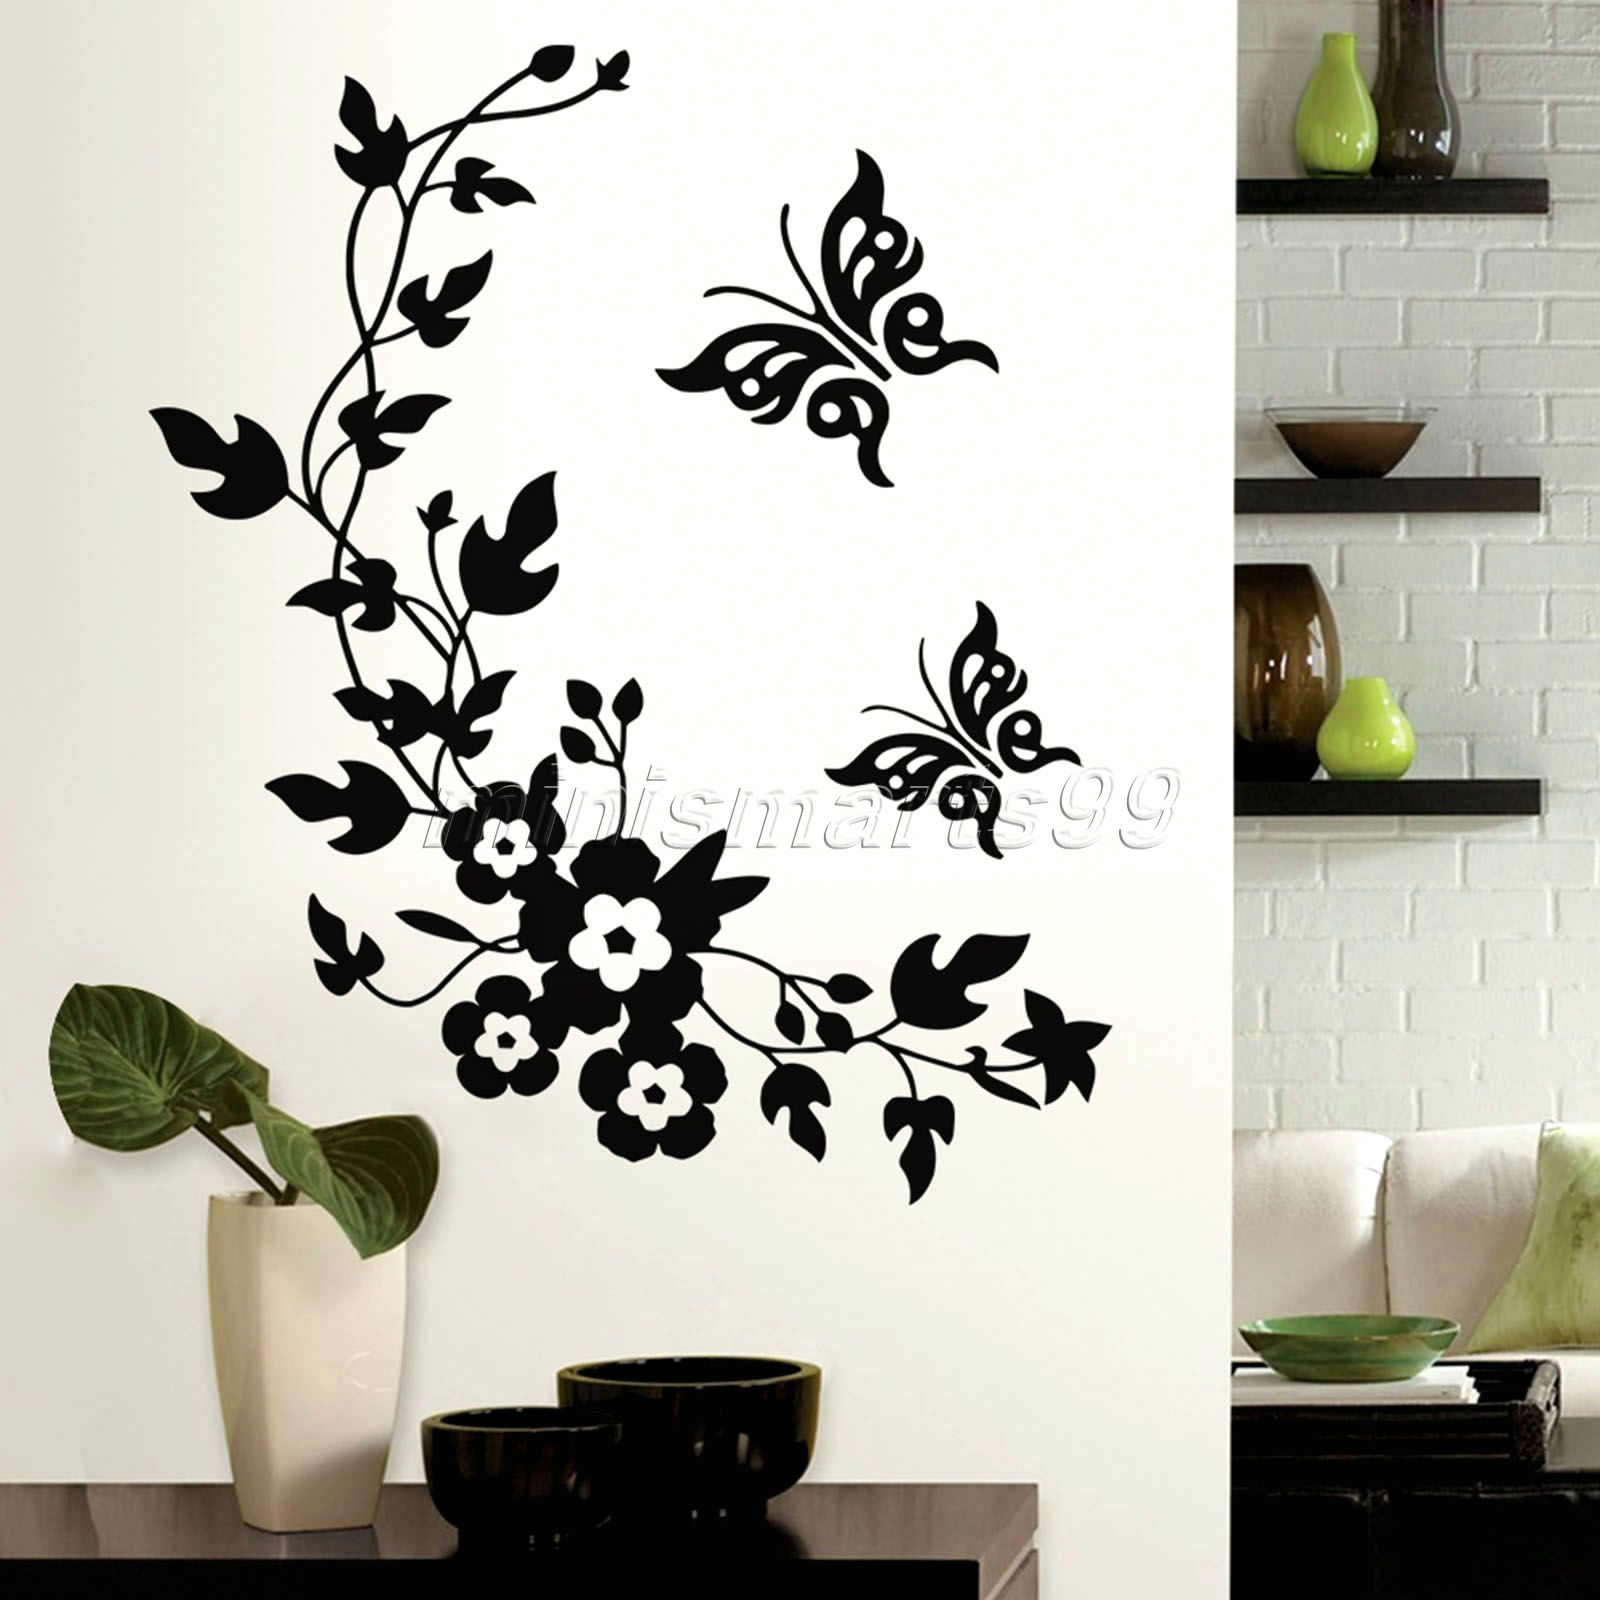 Butterflies flowers animals stack wall stickers decal kids adhesive vinyl wallpaper mural baby girl boy room nursery decor